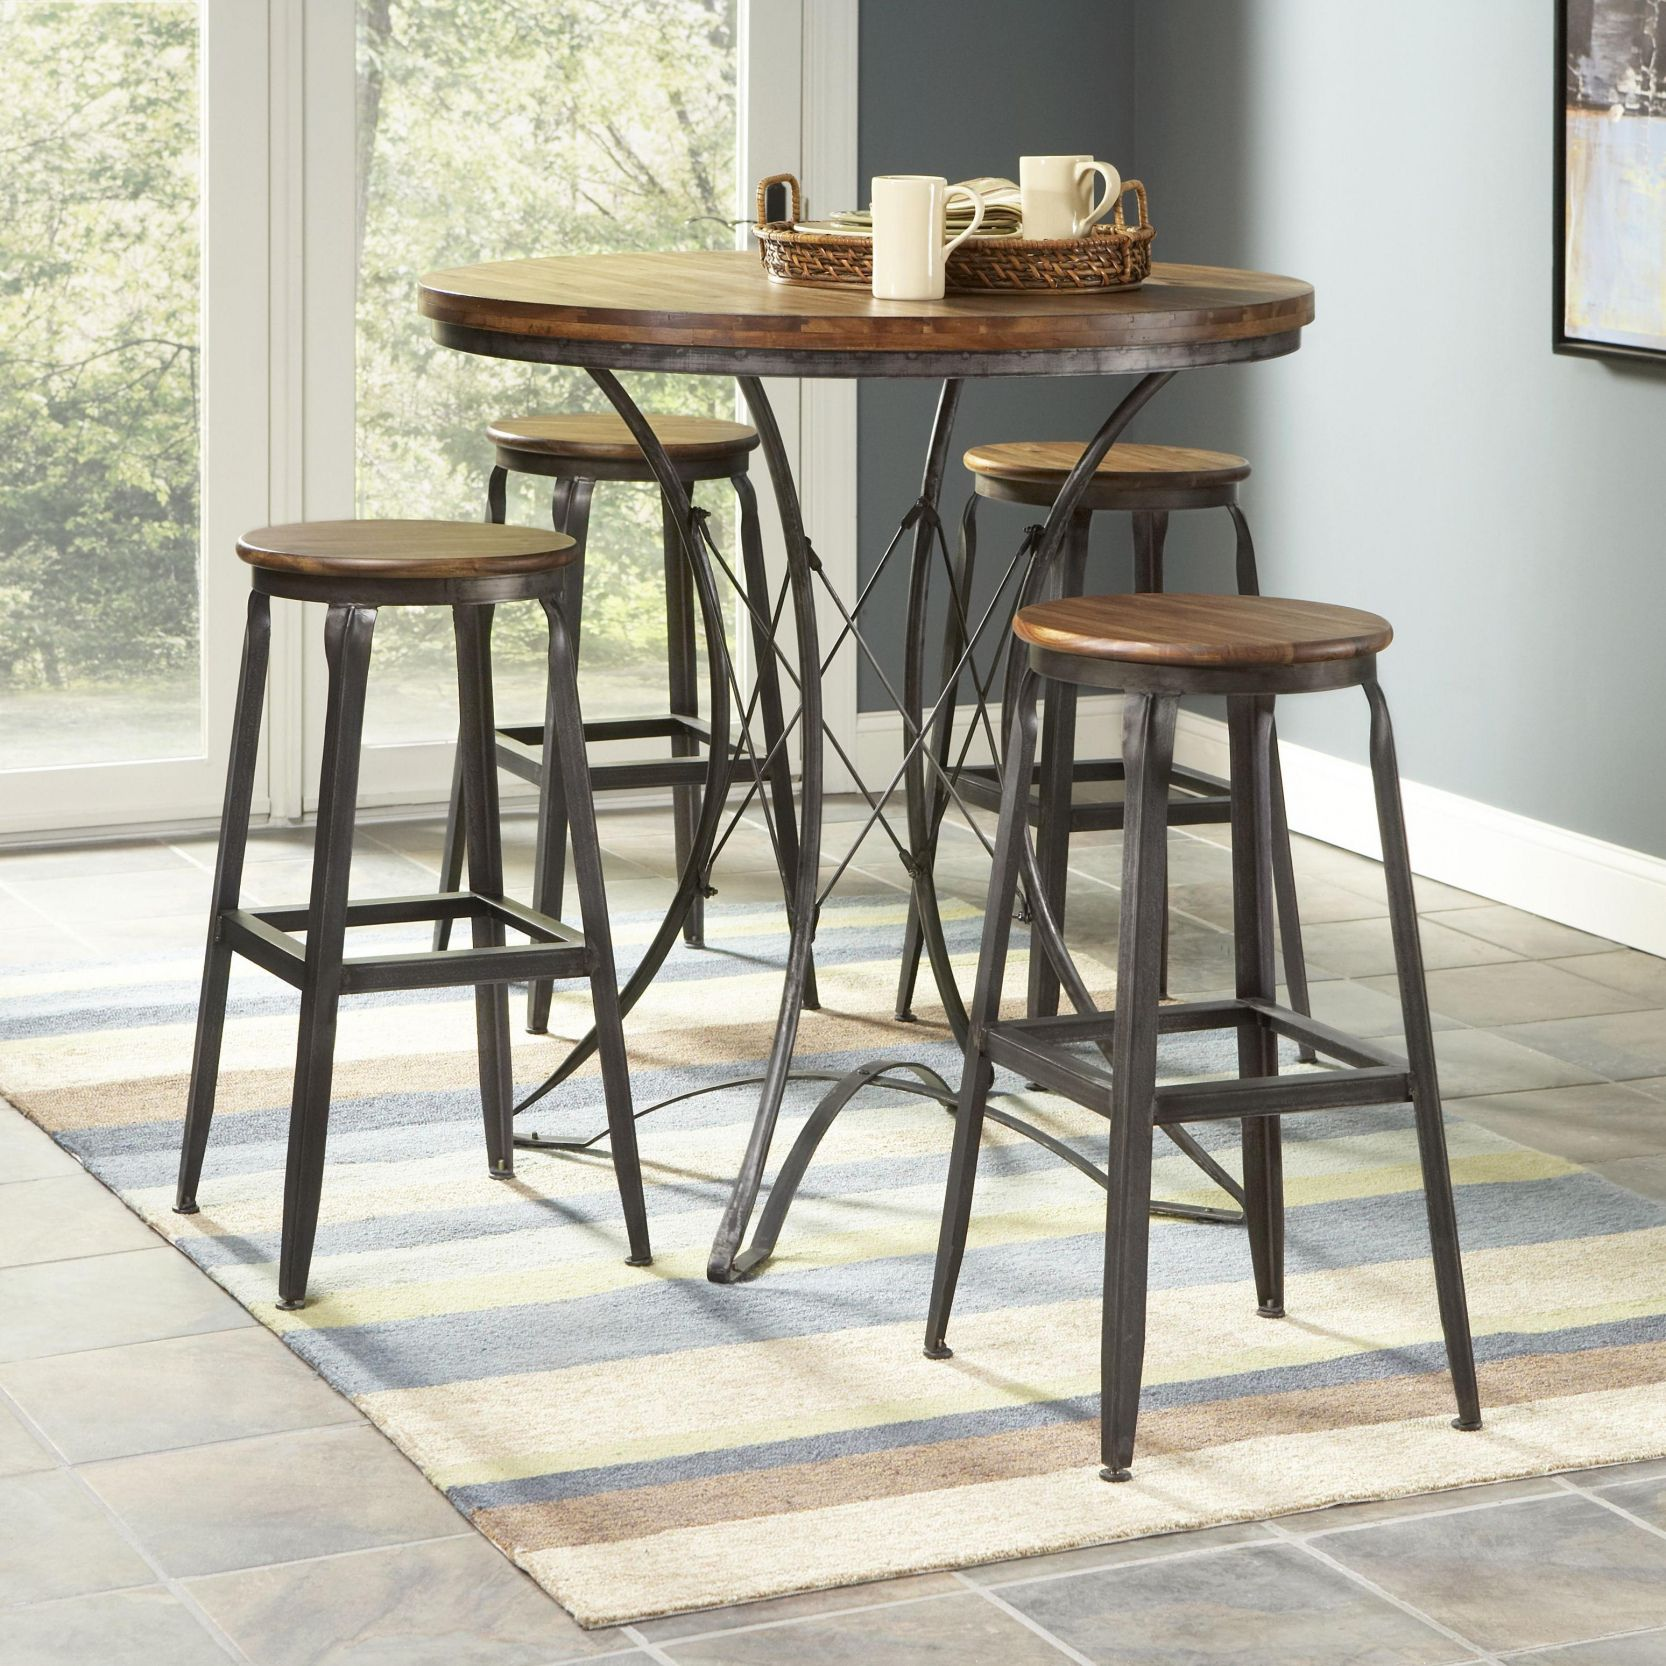 Best Of Bar Table and Stool Set